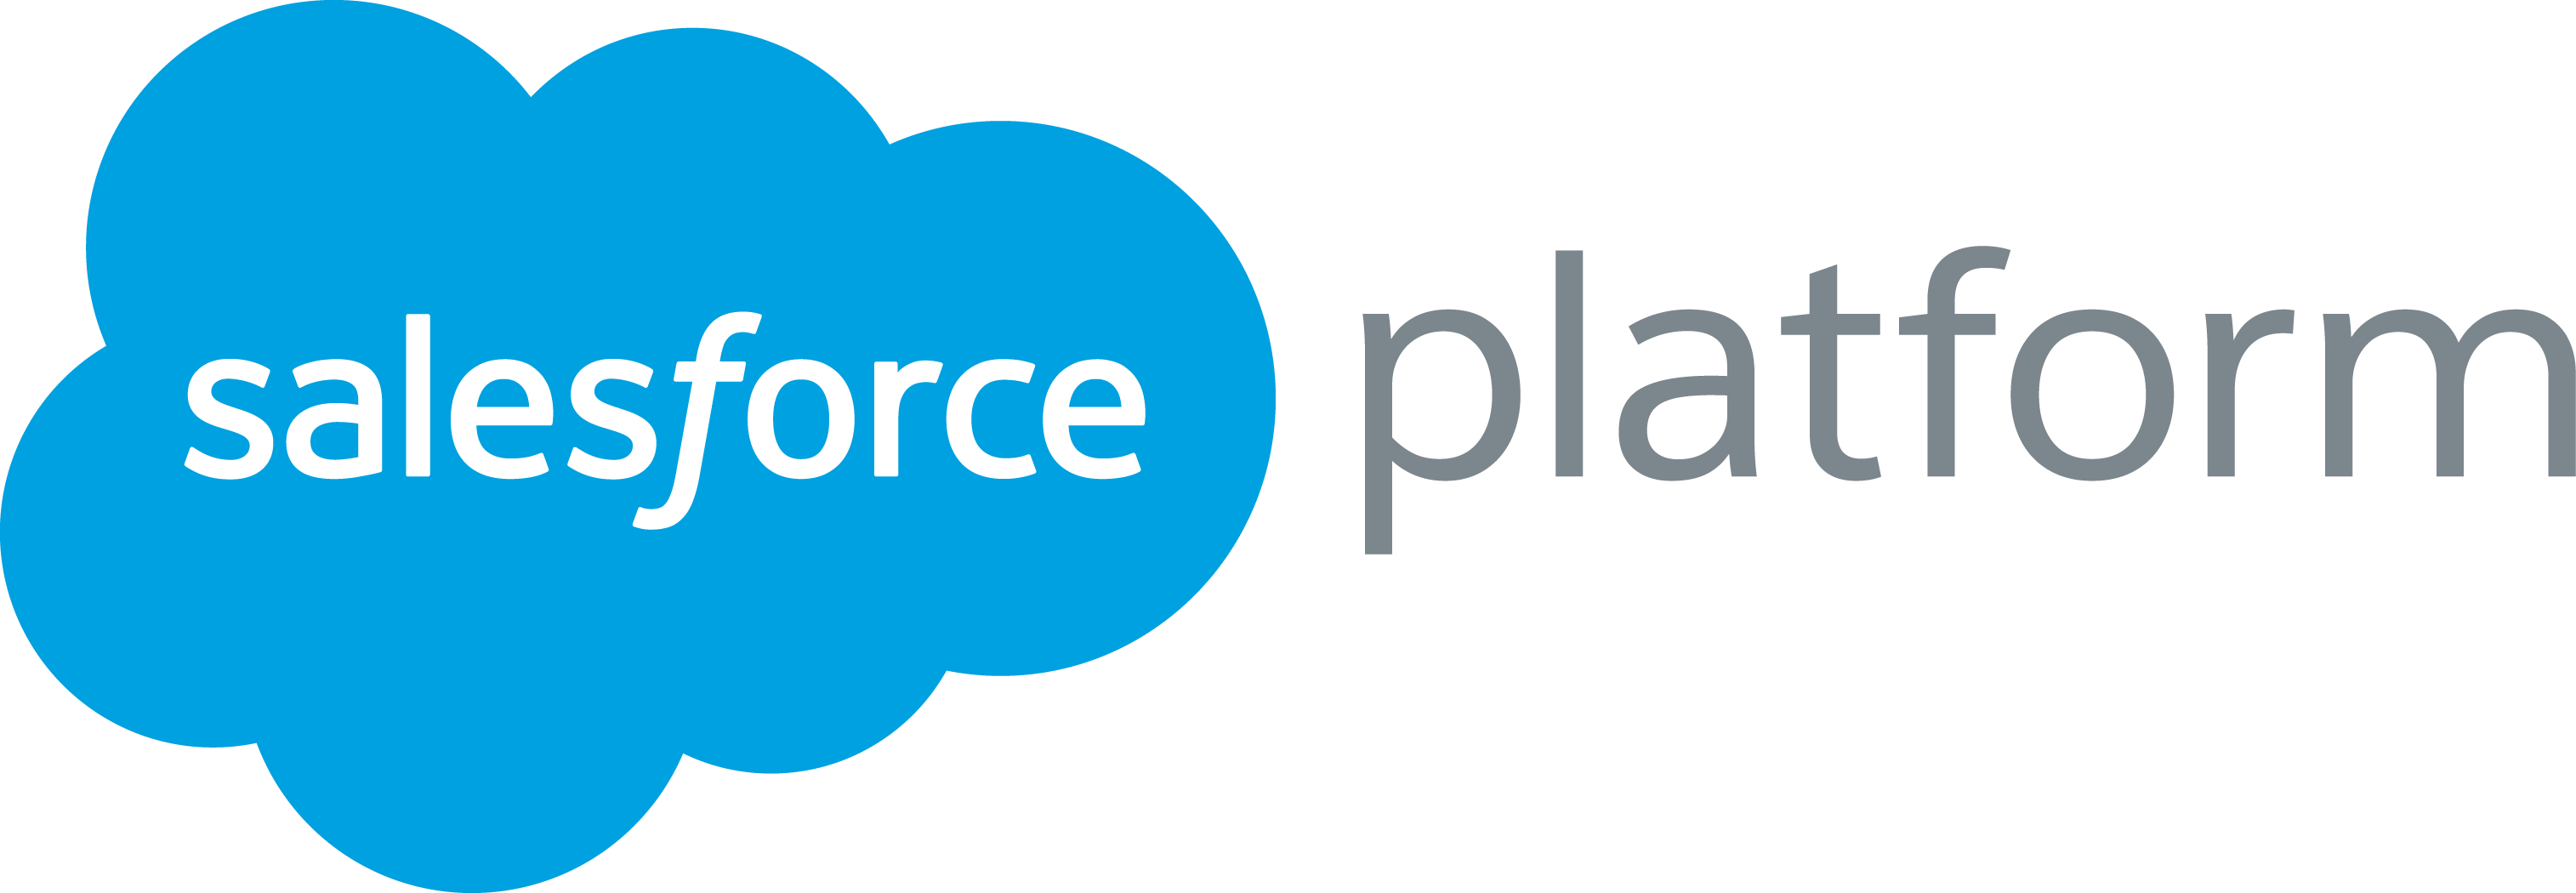 Salesforce Apex Batch Jobs - Srinath Therampattil - Medium